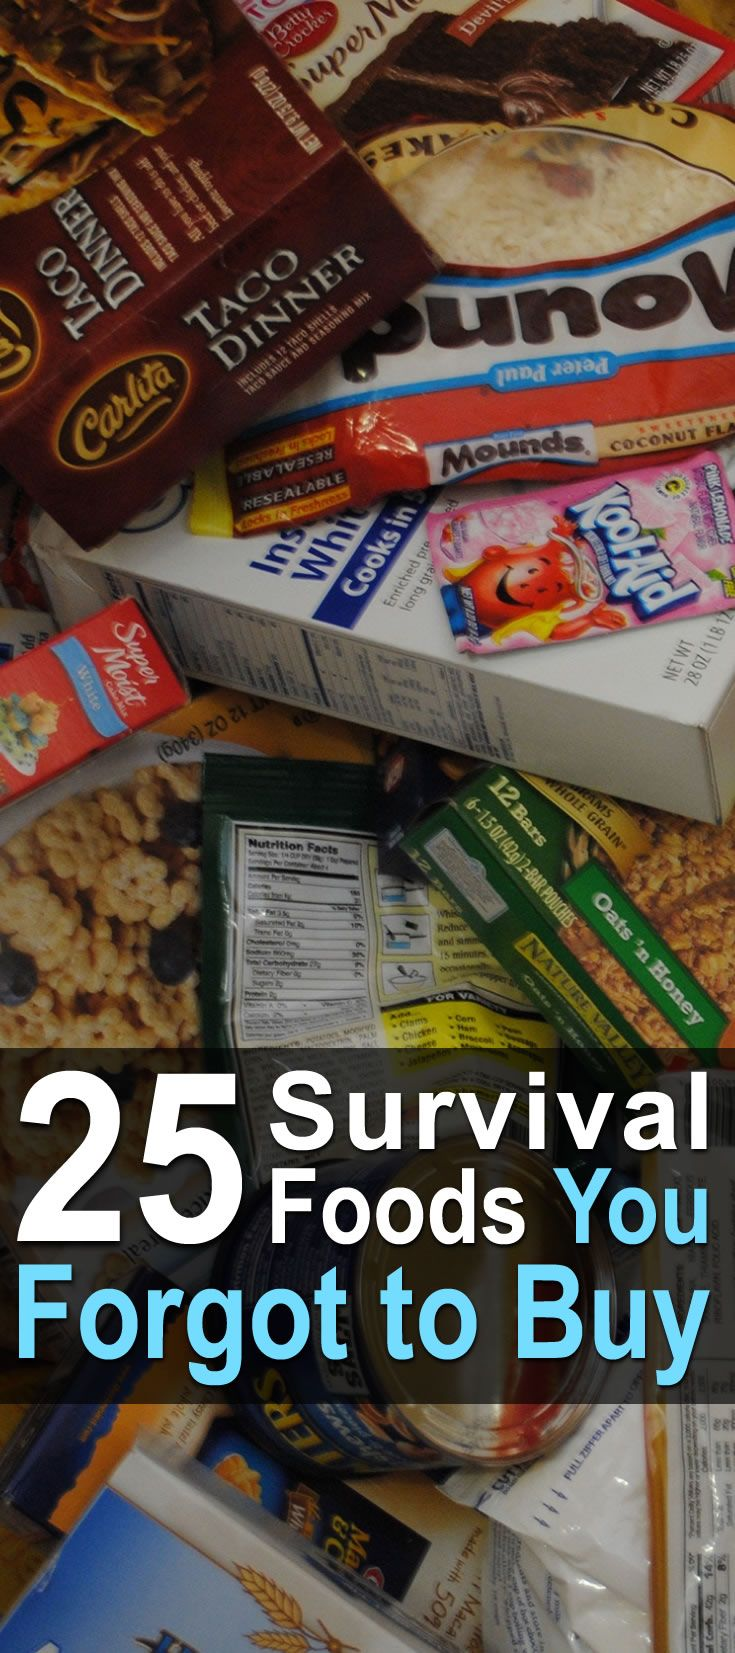 There are basic survival foods that can be found in every bunker. But there's a whole host of other survival foods that are often overlooked.